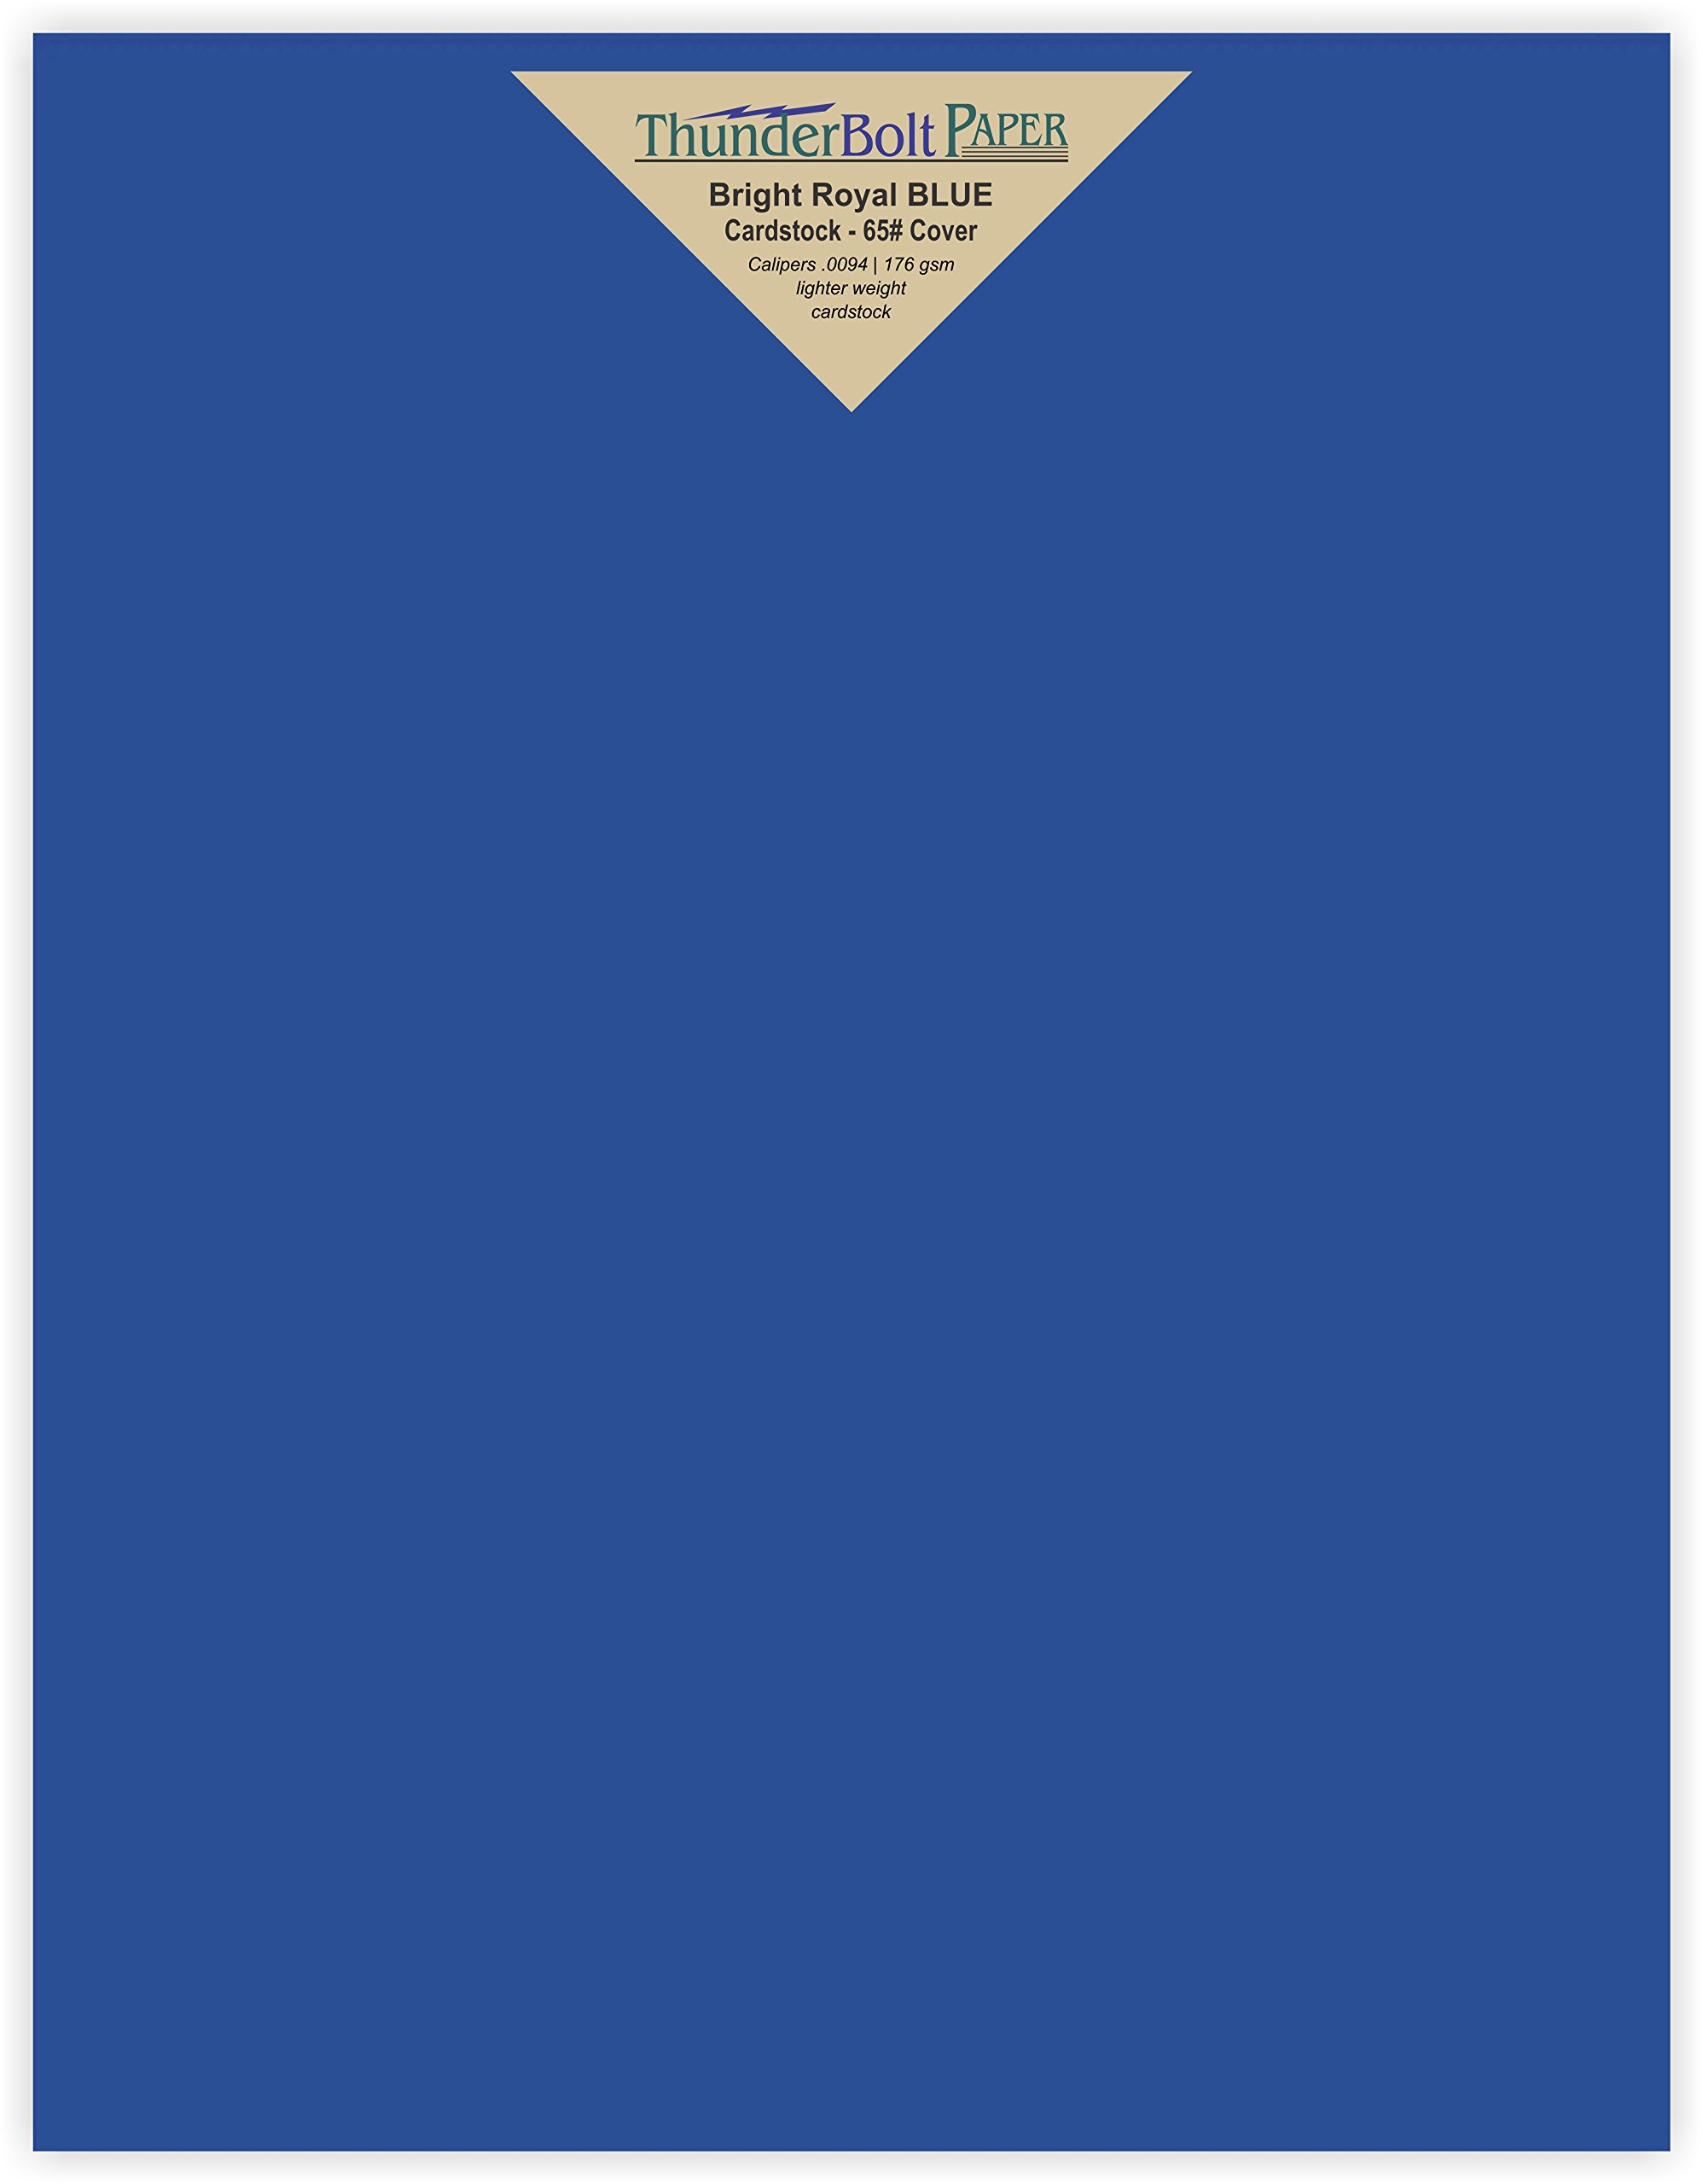 50 Bright Royal Blue 65# Cardstock Paper 8.5'' X 11'' (8.5X11 Inches) Standard Letter|Flyer Size - 65Cover/45Bond Light Weight Card Stock - Bright Printable Smooth Paper Surface